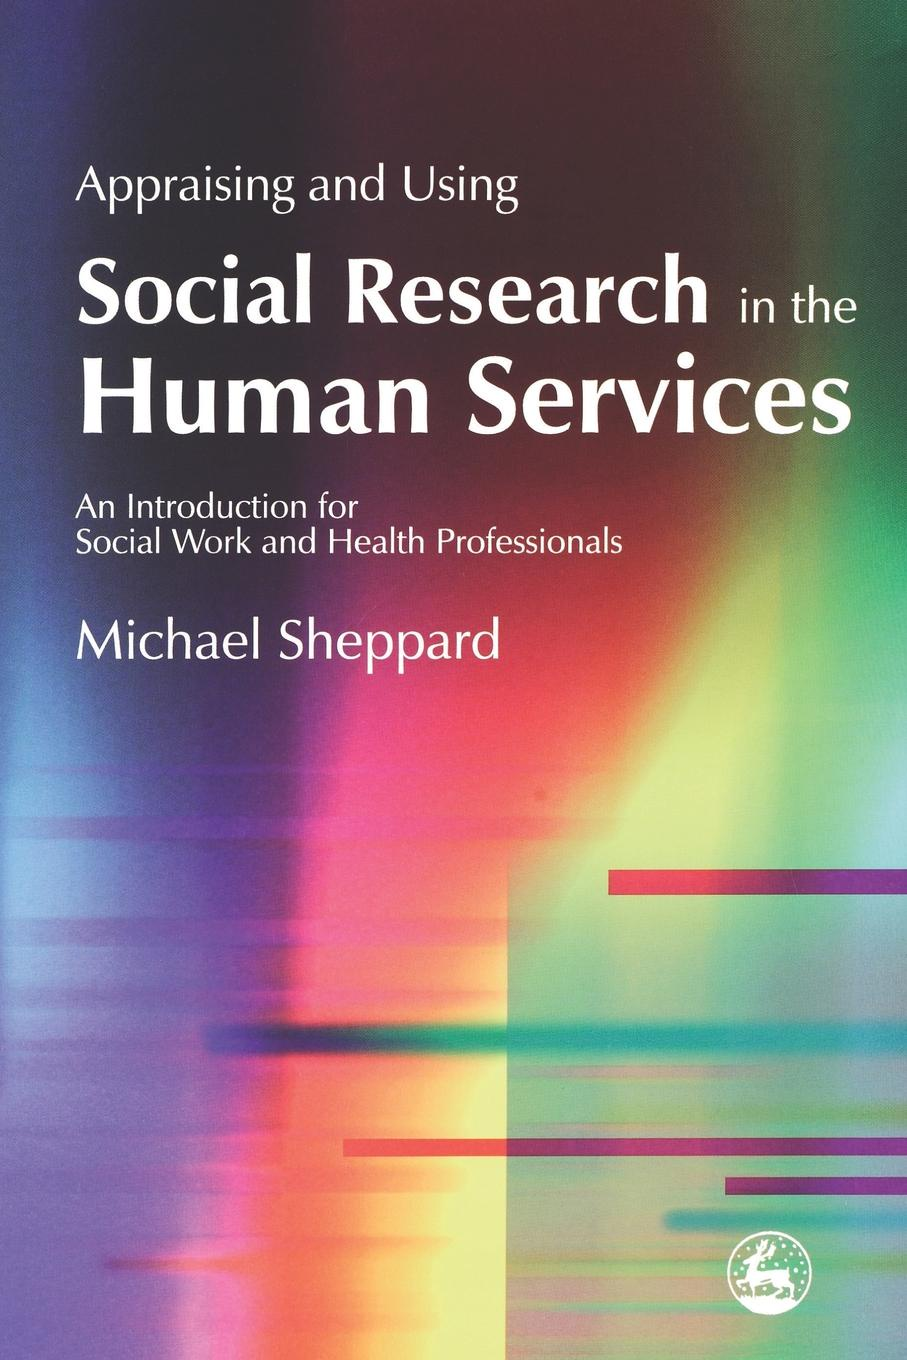 Michael Sheppard Appraising and Using Social Research in the Human Services. An Introduction for Social Work and Health Professionals michael crawley j statistics an introduction using r